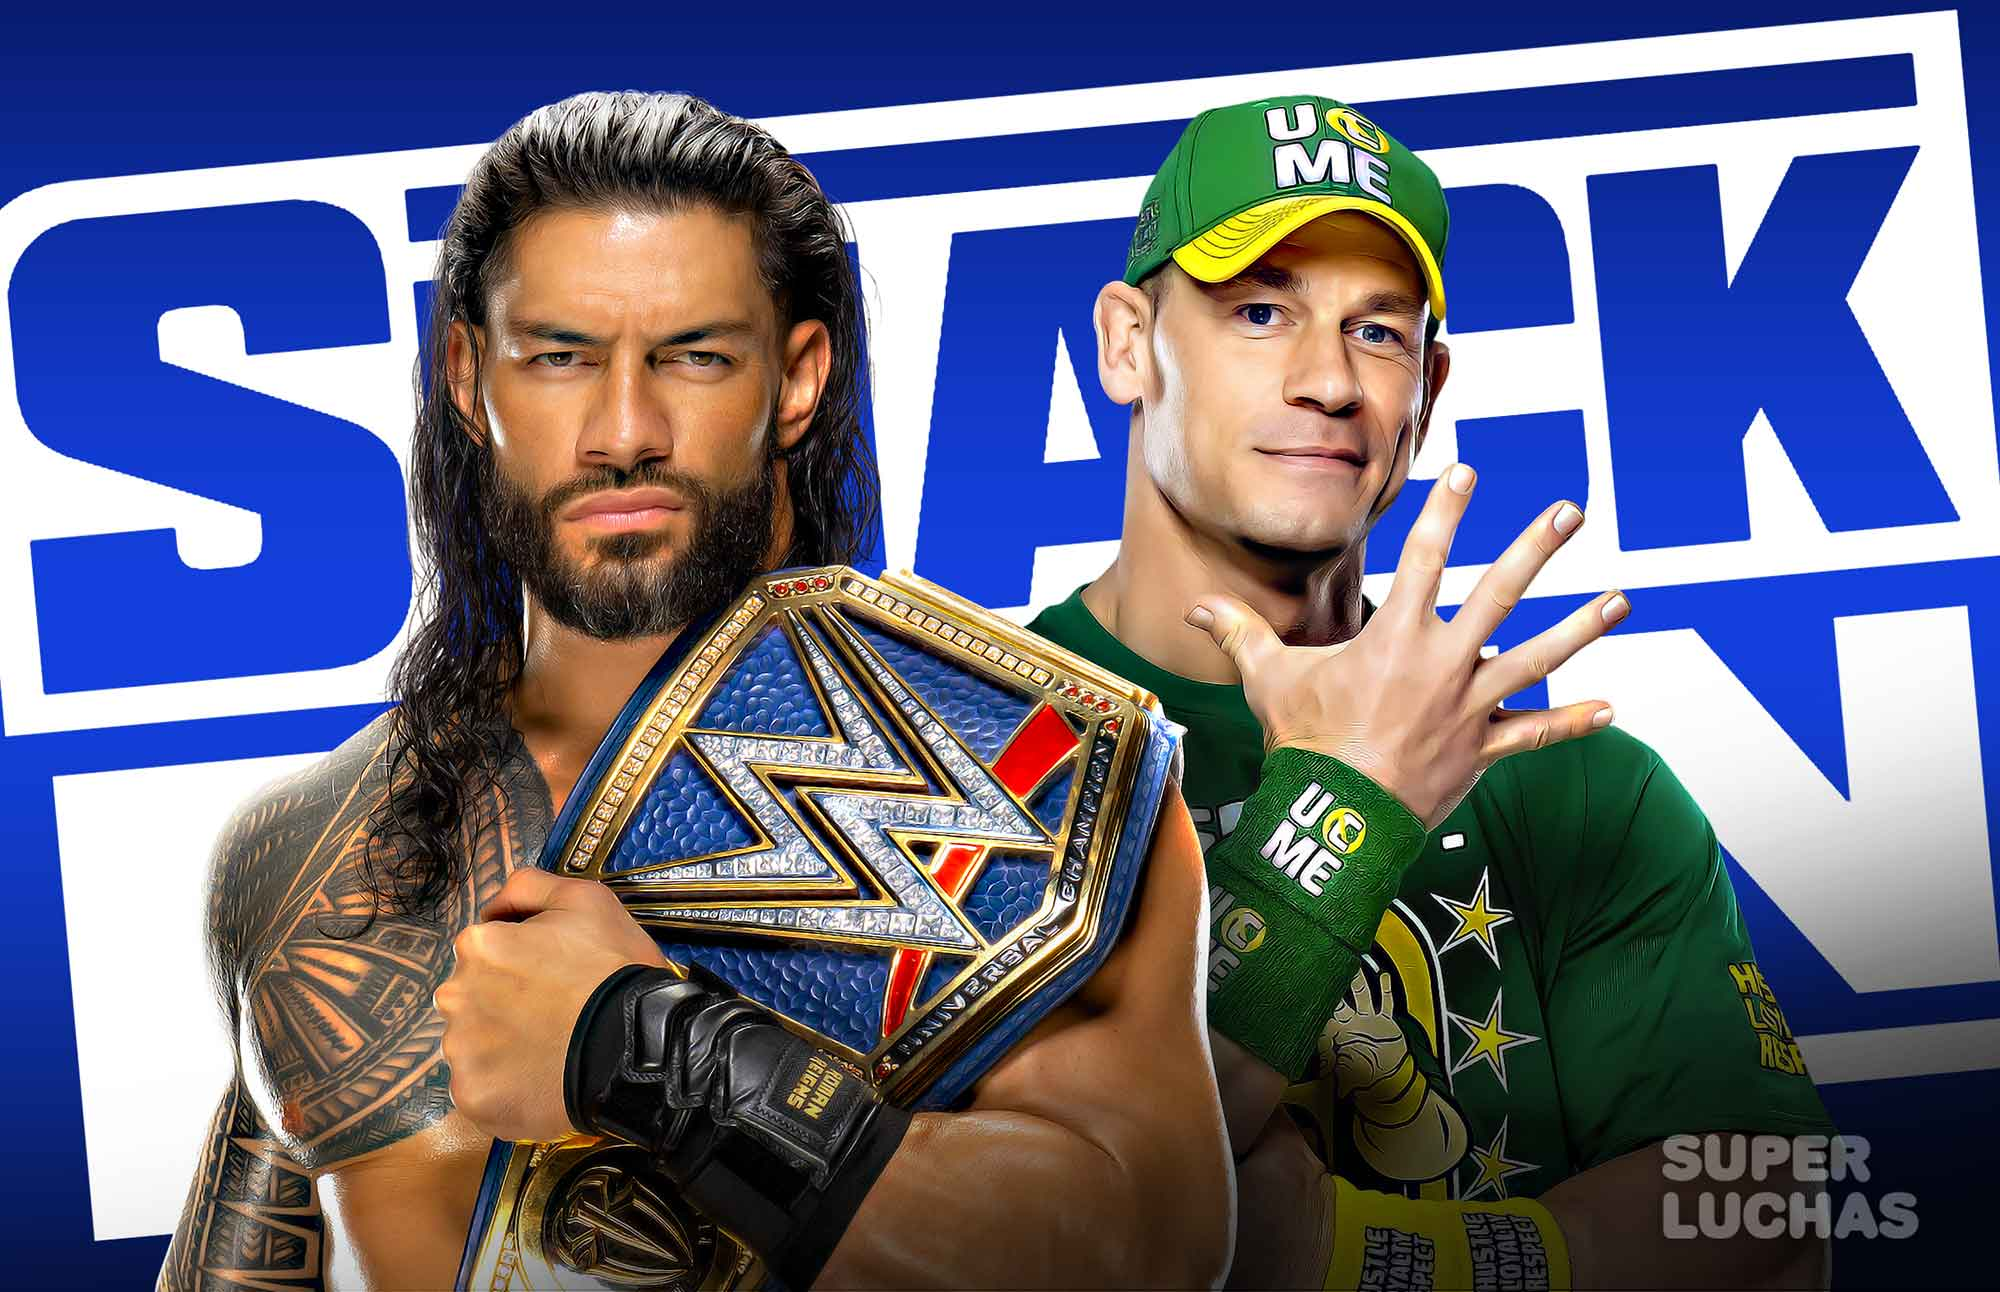 WWE SMACKDOWN August 20, 2021 | Live results | One day from SummerSlam